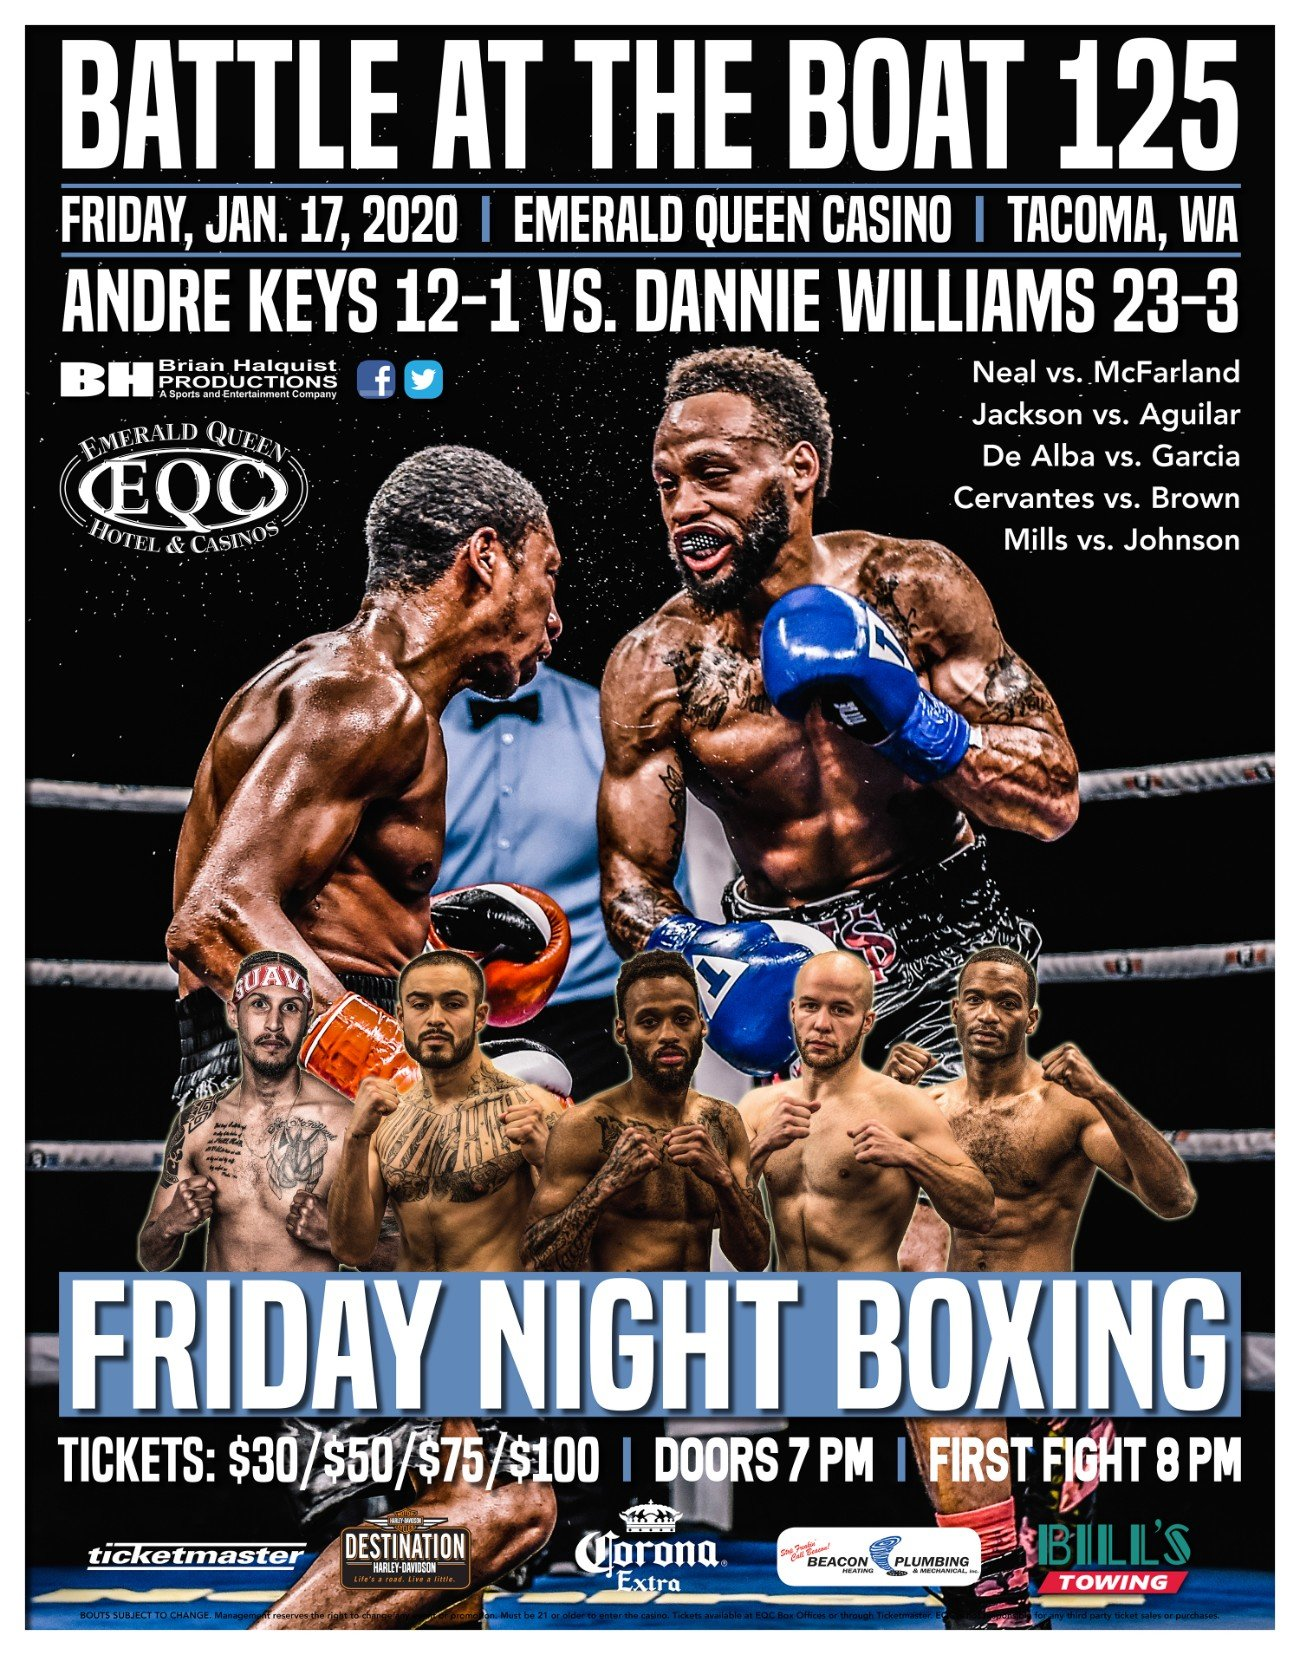 Brian Halquist Productions will kick of its 2020 season with the 125th installment of the Battle at the Boat boxing series on Friday at the Emerald Queen Casino in Tacoma, Wash.